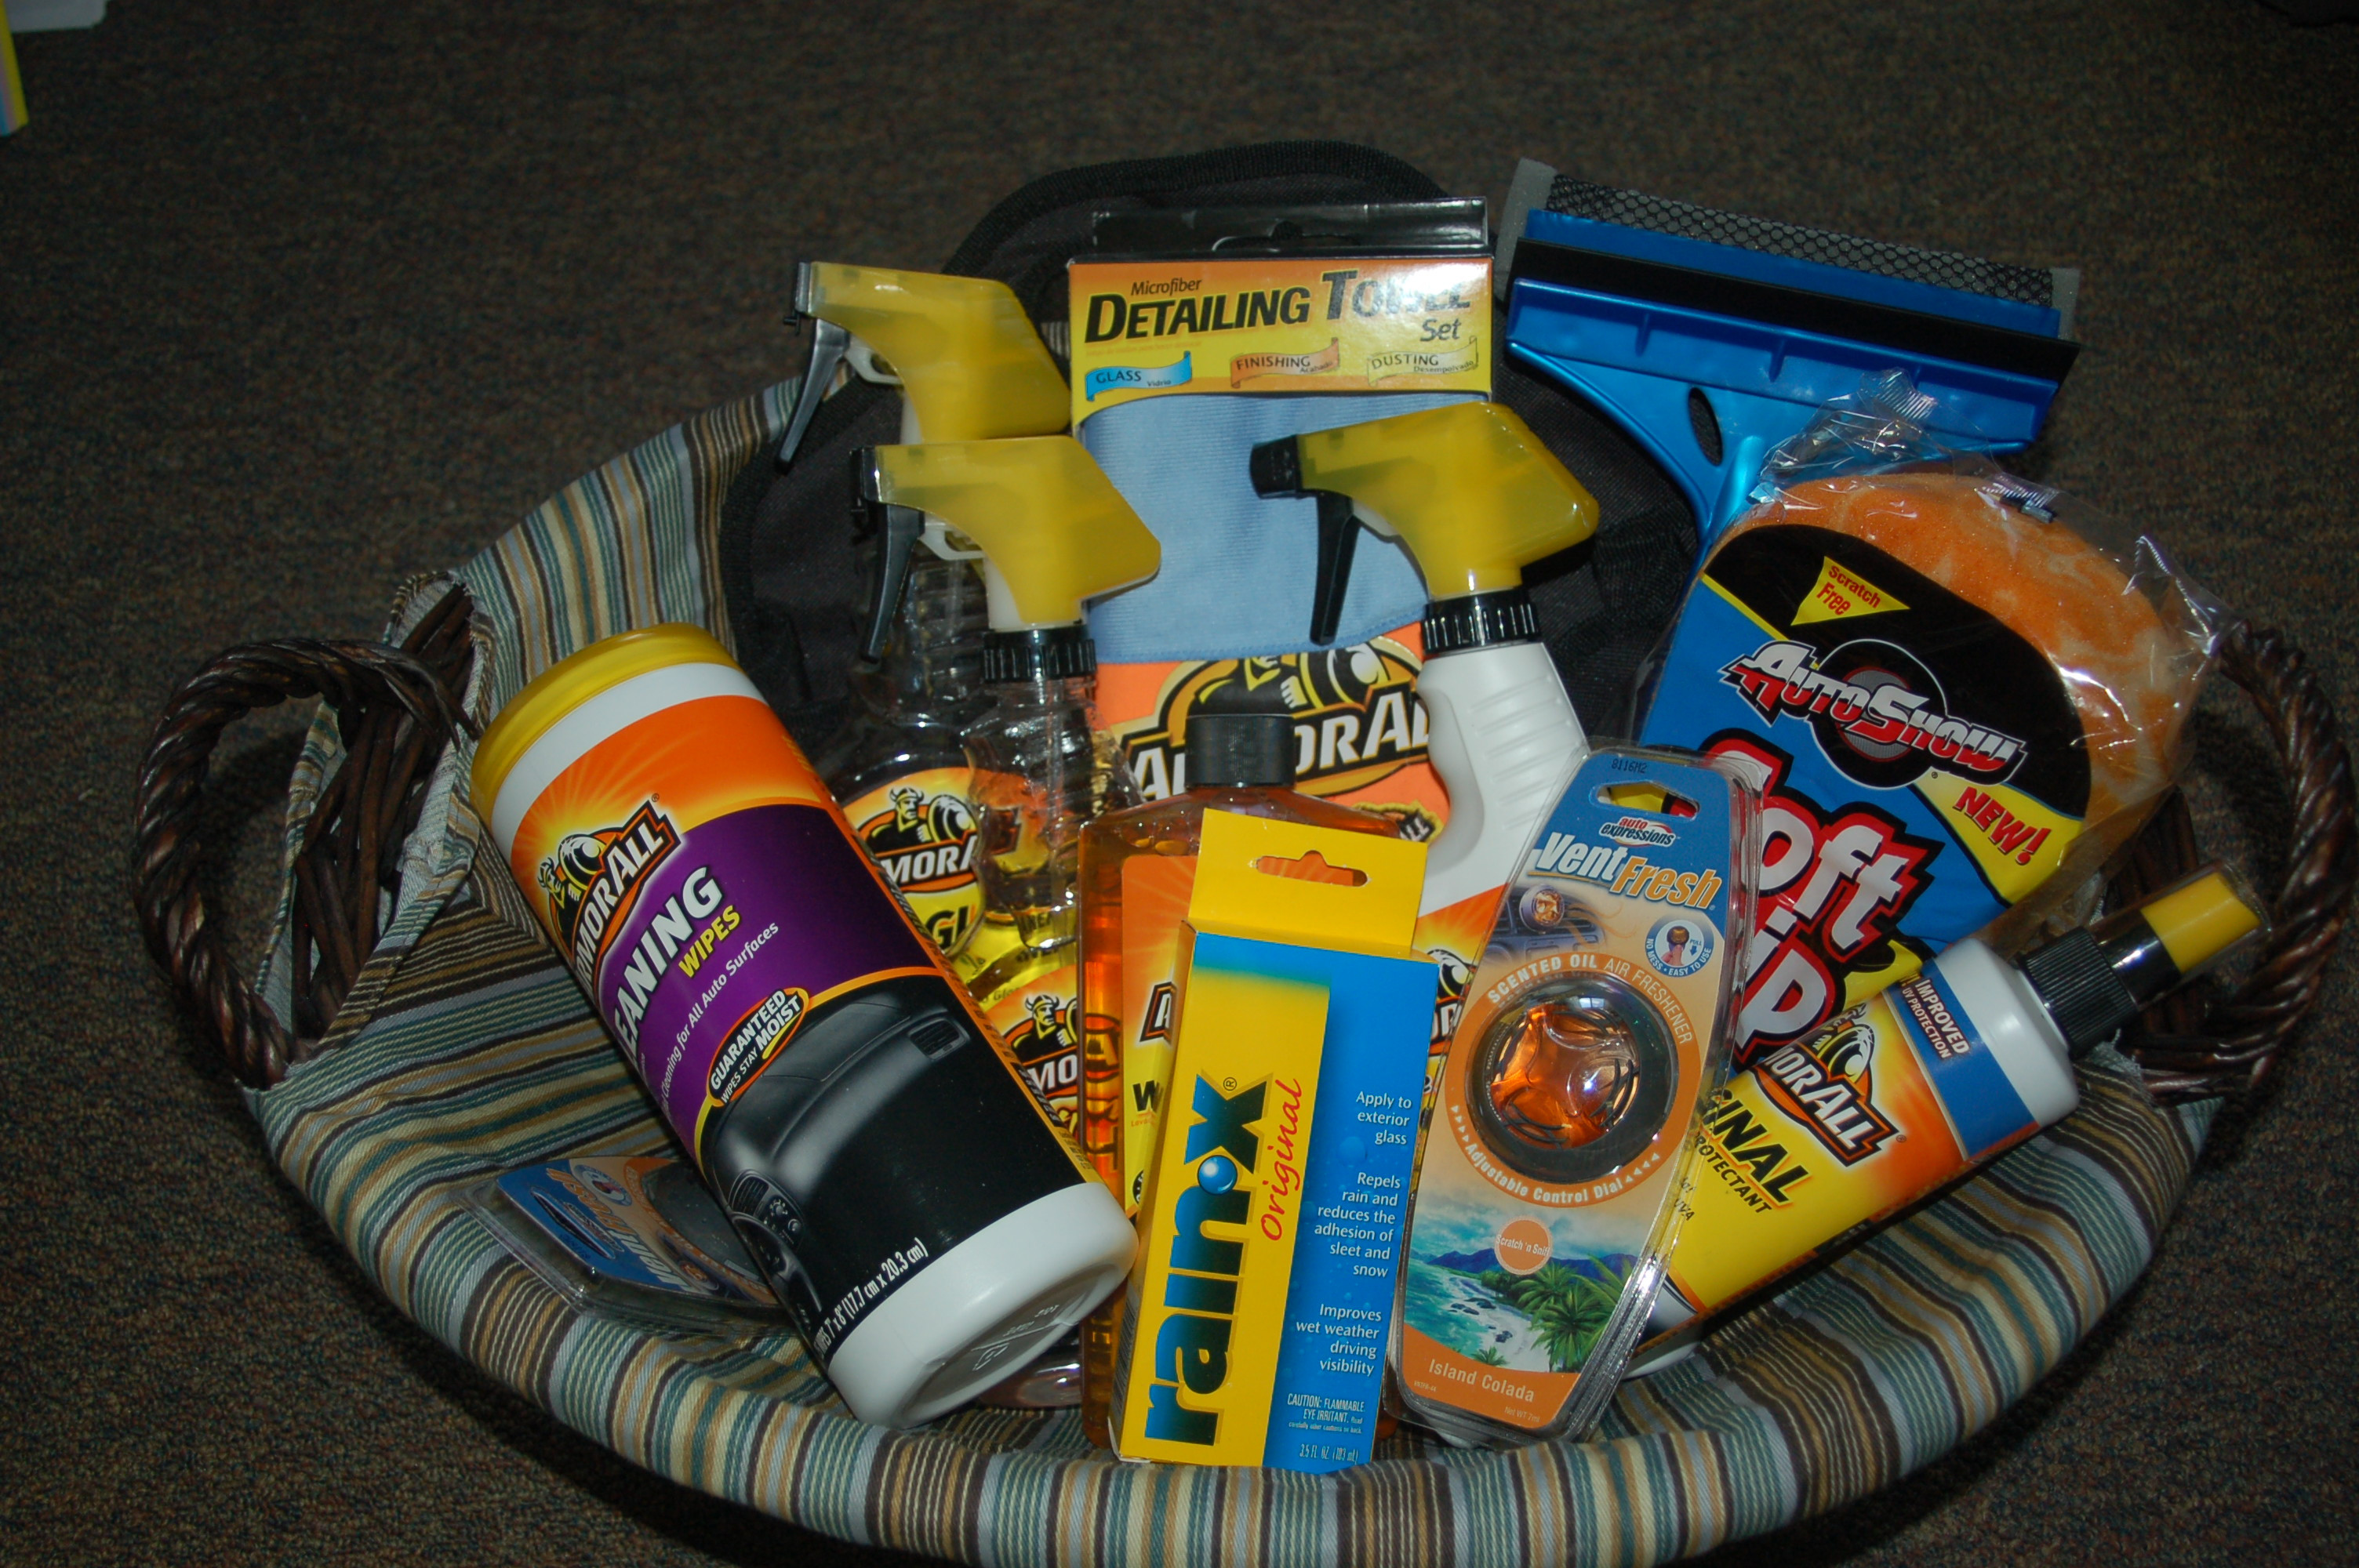 Best ideas about Silent Auction Gift Basket Ideas . Save or Pin Silent Auction Now.